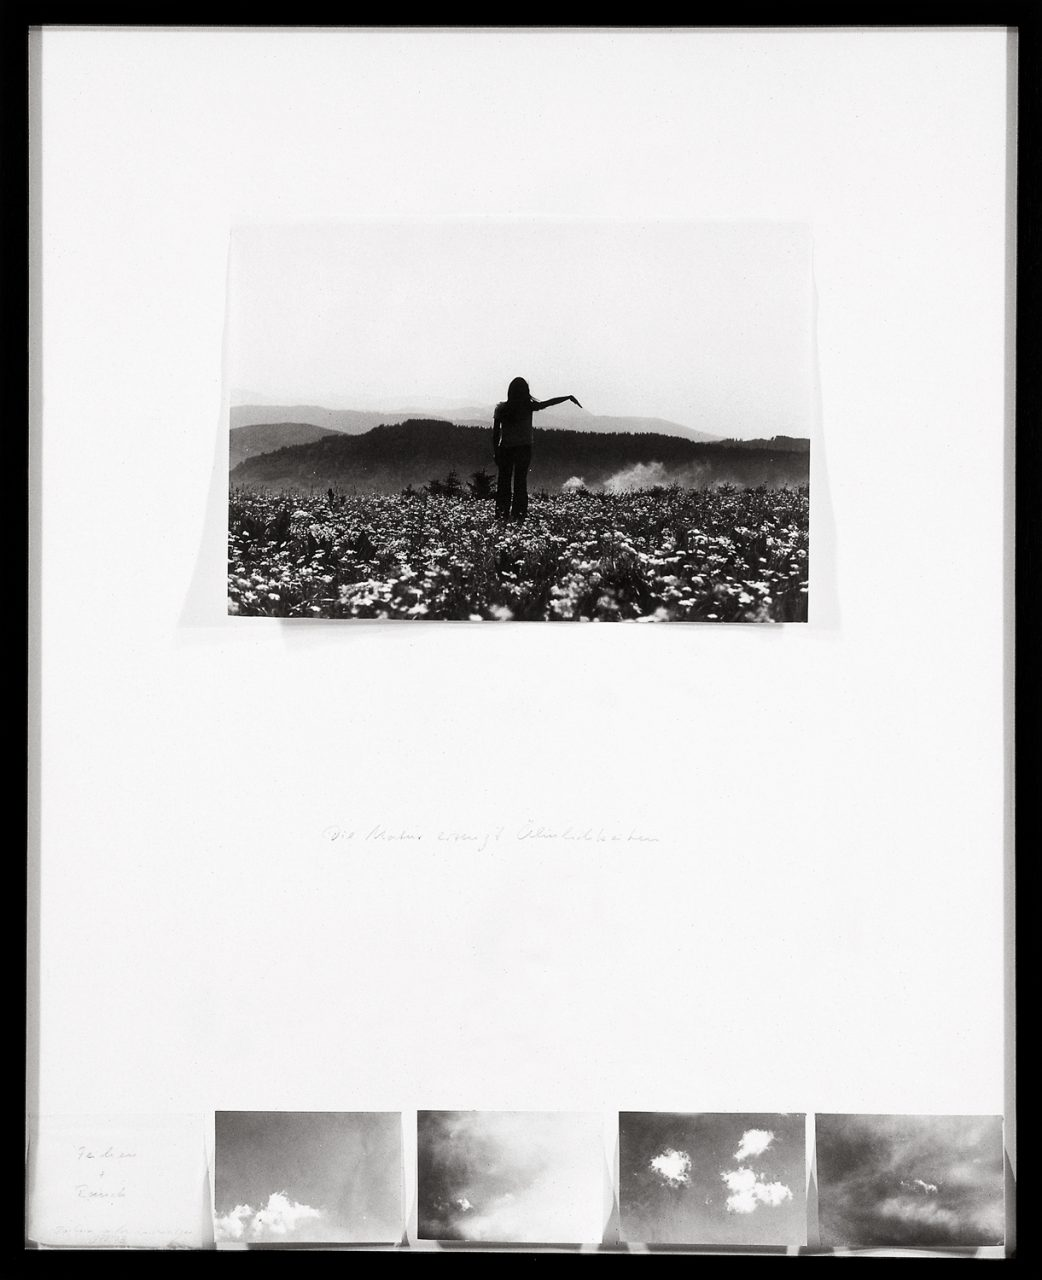 Mimesis | 1972-1973 | Silver gelatin prints mounted on paper | 90,5 x 73,5 cm